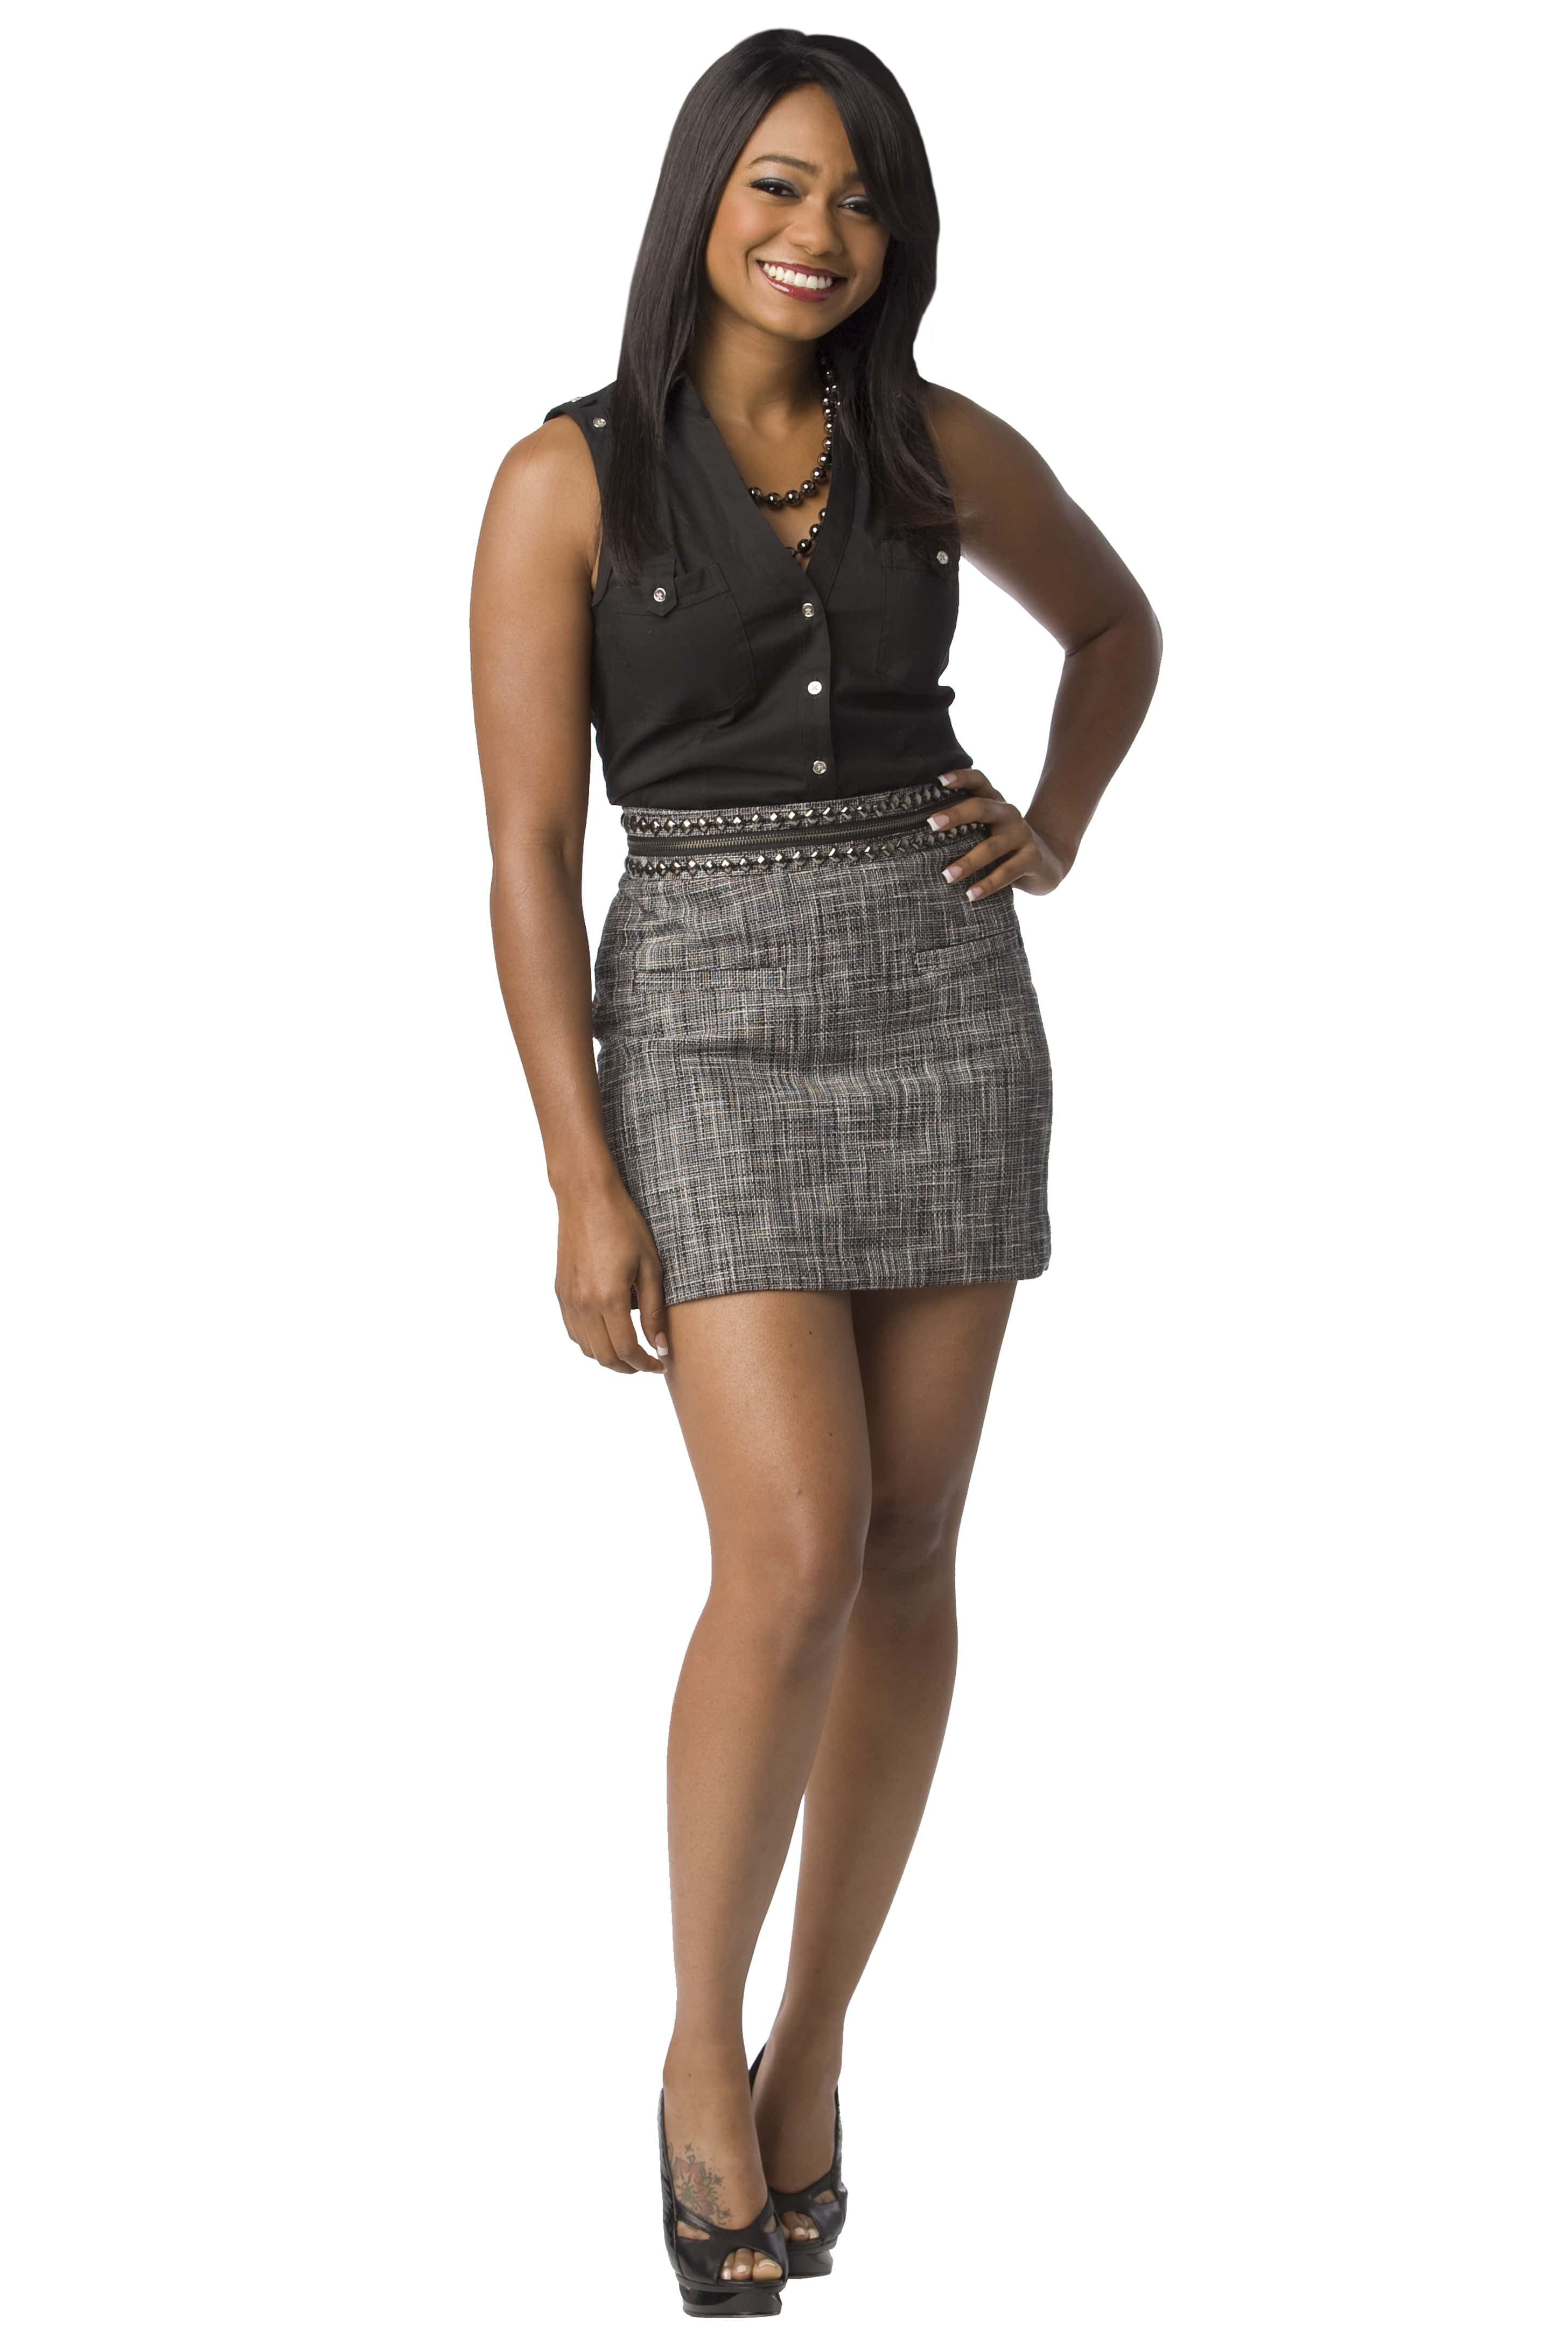 Tatyana Ali Pictures